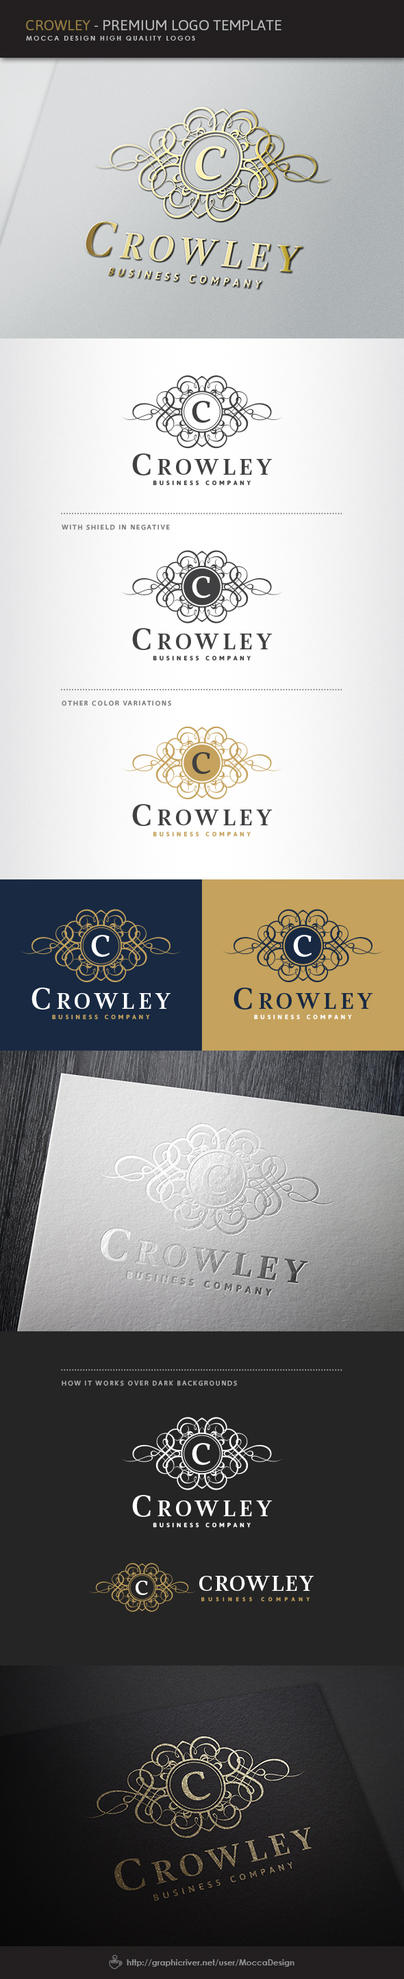 Crowley Logo by moccadsgn